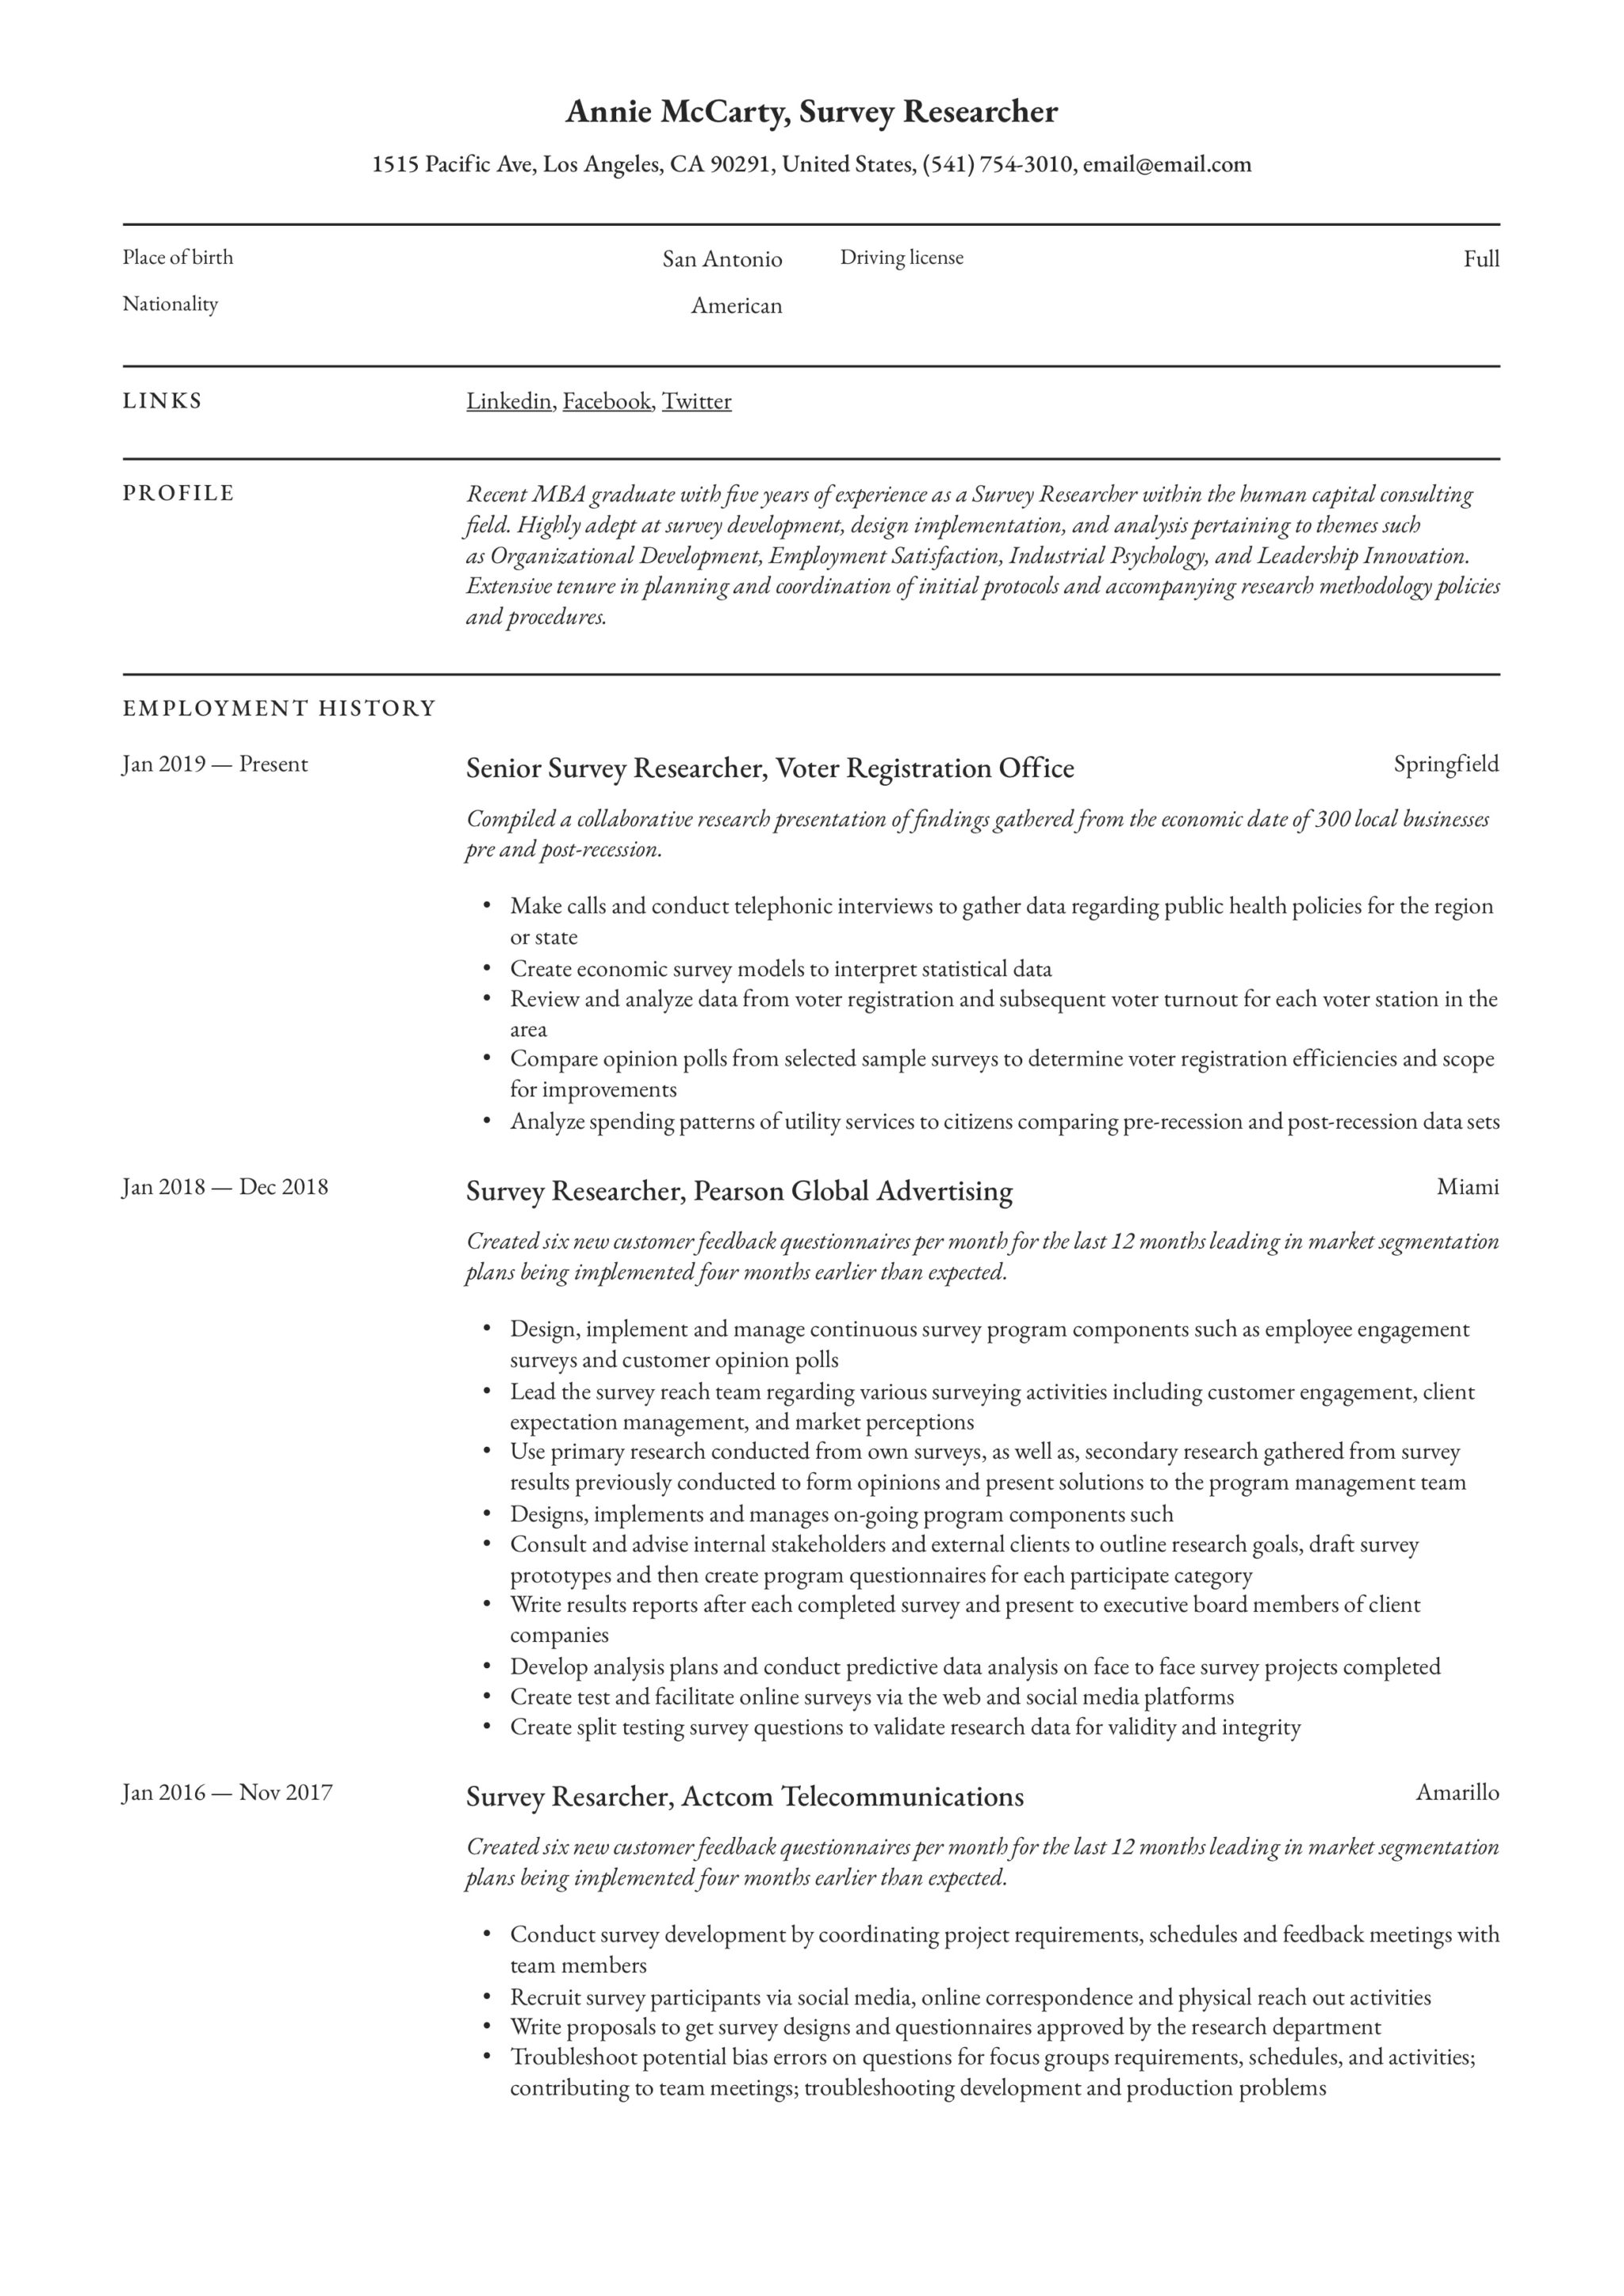 Survey researcher Resume Example